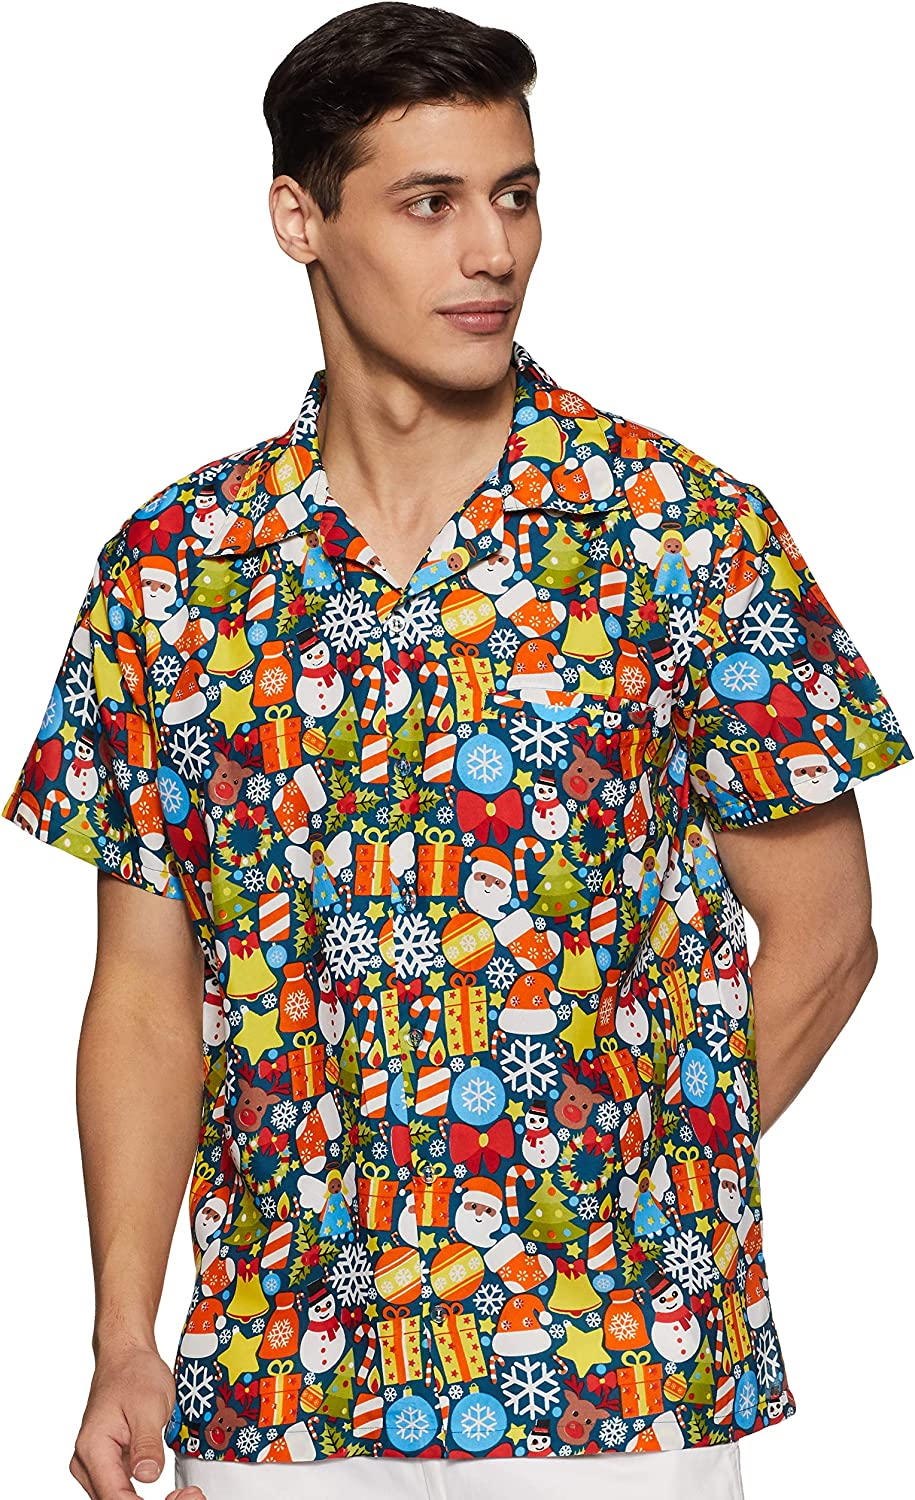 Stylore Christmas Shirt for Men Hawaiian Relaxed-Fit Vacation Multiple Color